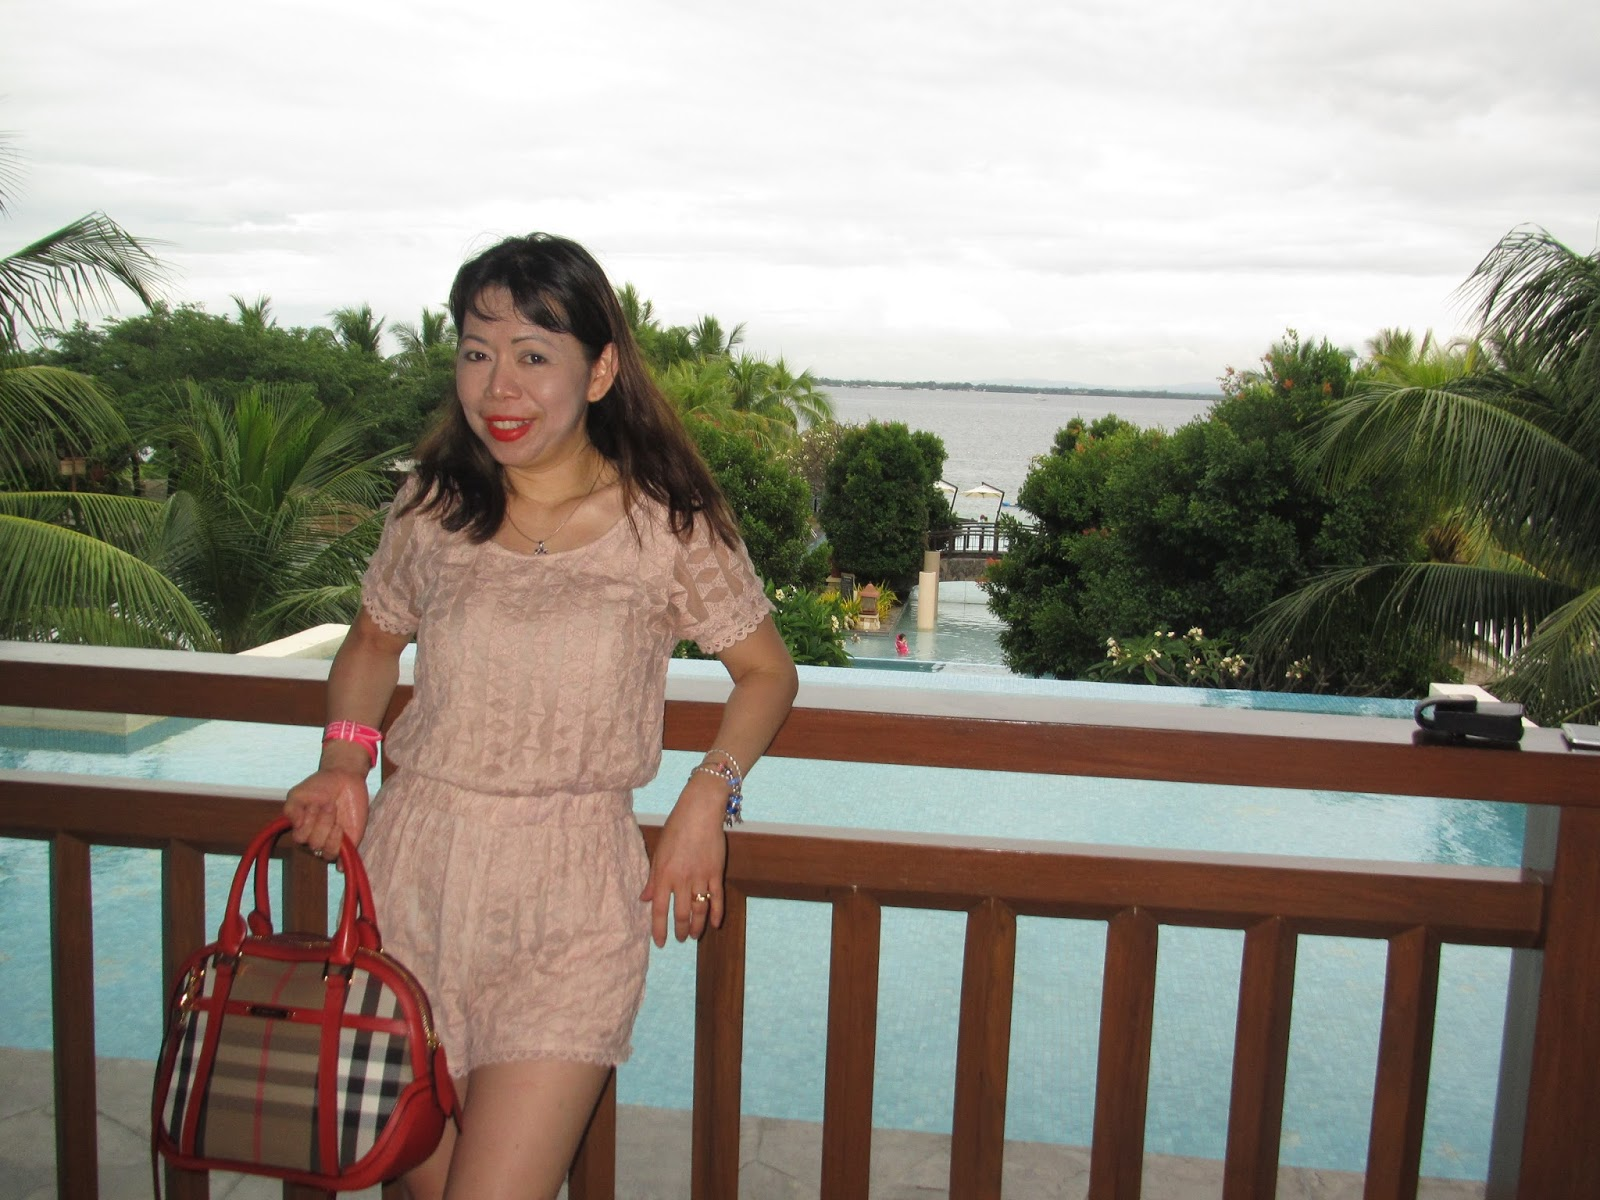 Crimson Resort Cebu